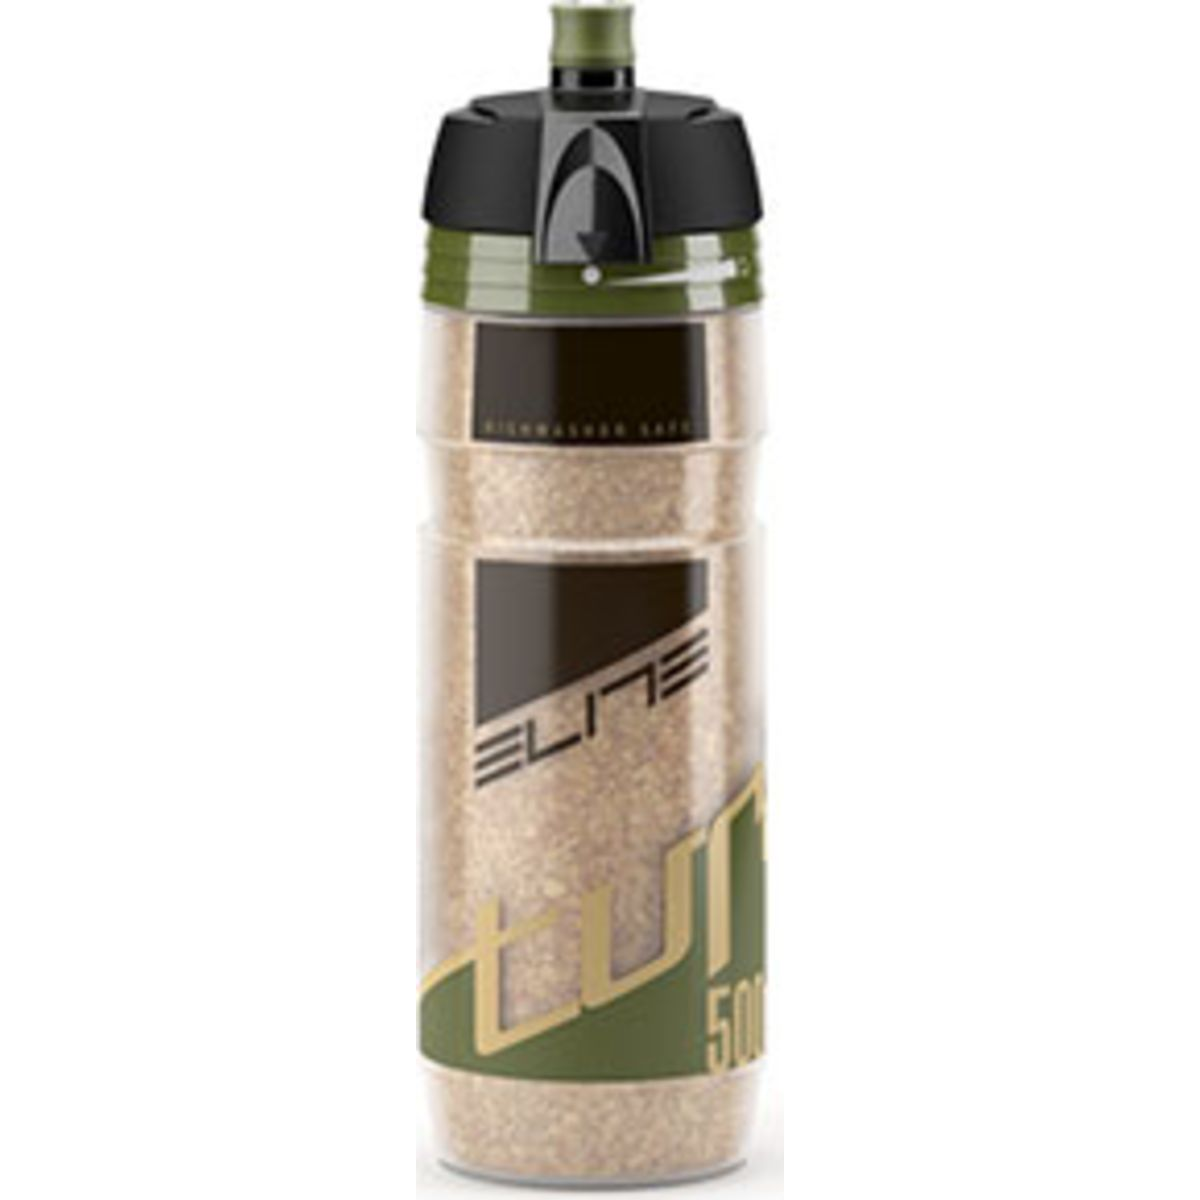 Turacio thermal drinks bottle